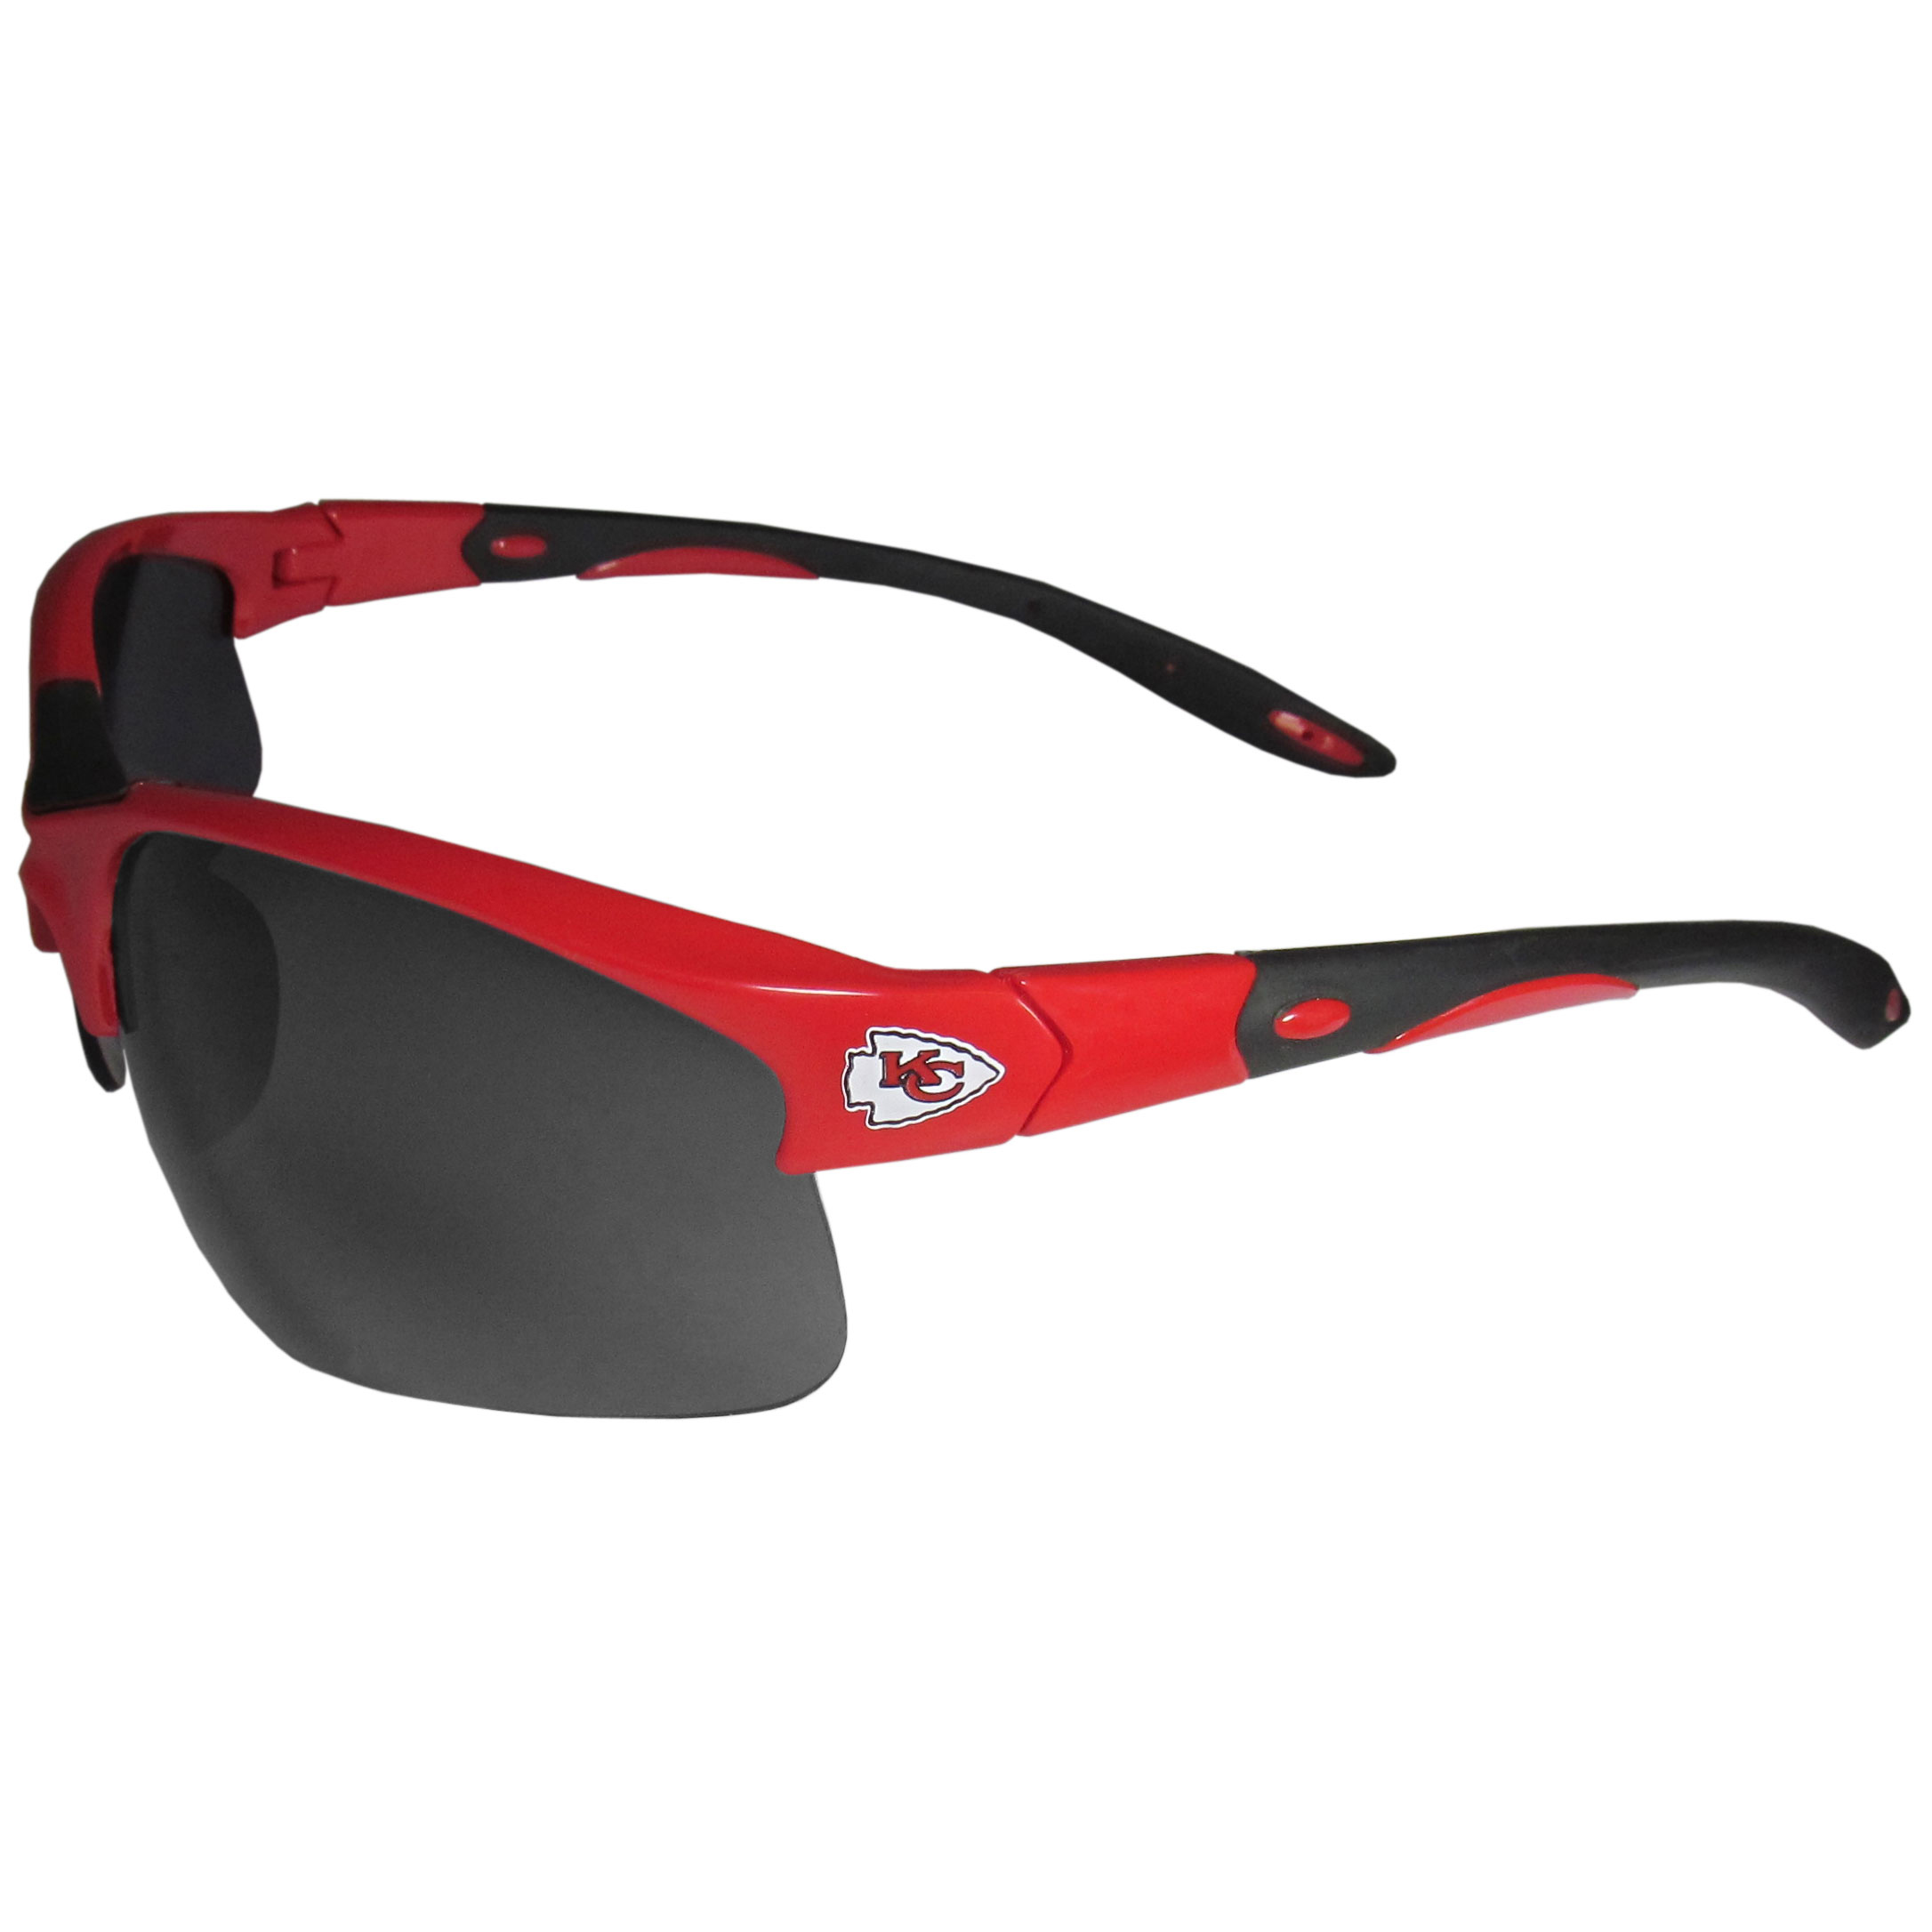 Kansas City Chiefs Blade Sunglasses - Our blade sunglasses are the team logo screen printed on one side of the frames and the Kansas City Chiefs logo on the other side of the frames. The sunglass arms feature team colored rubber sport grips and flex hinges for comfort and durability. Maximum UV400 protection.